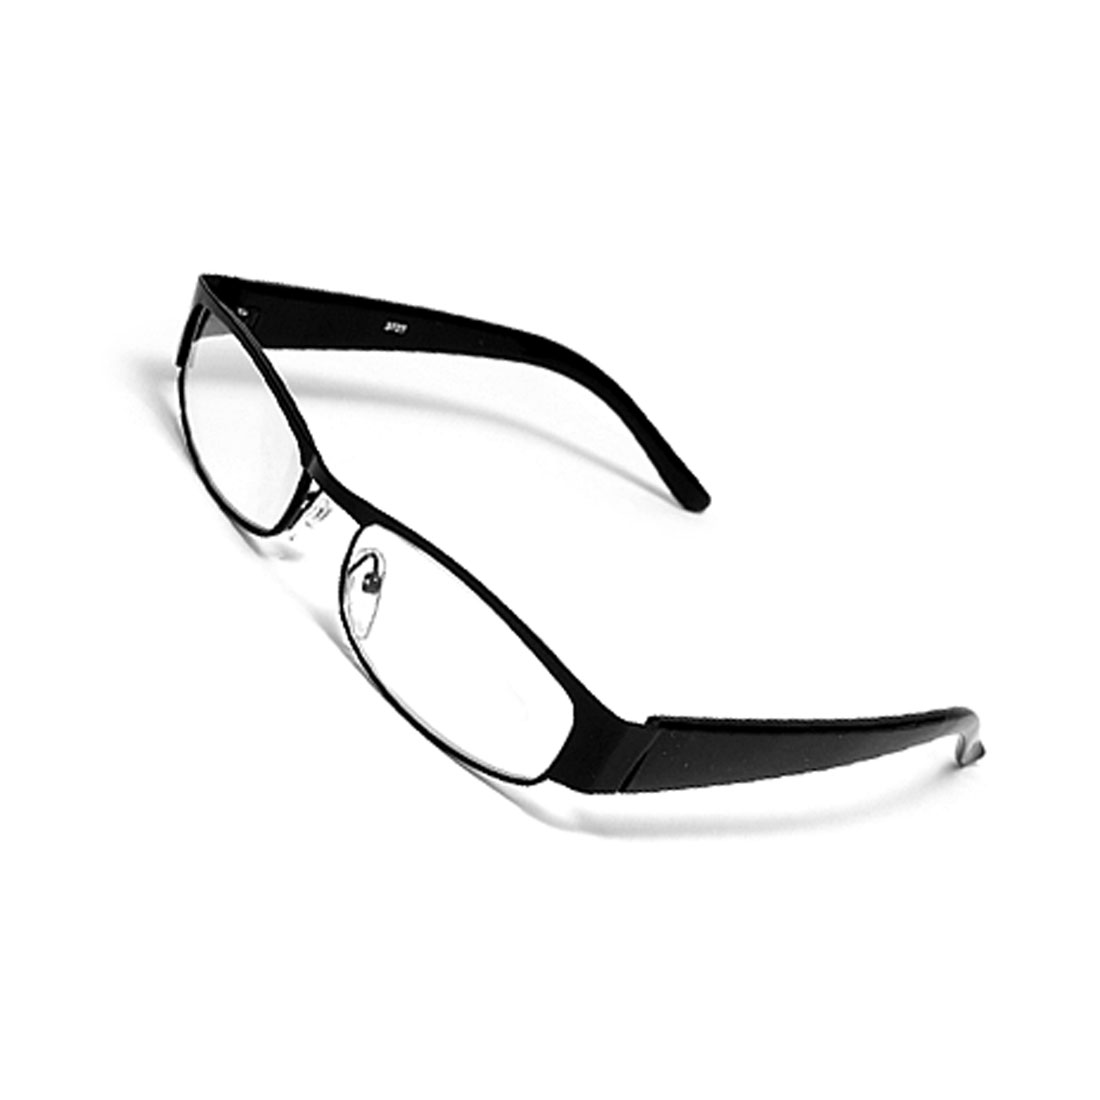 +3.00 Unisex Optical Reader Reading Glasses Eyeglasses Black